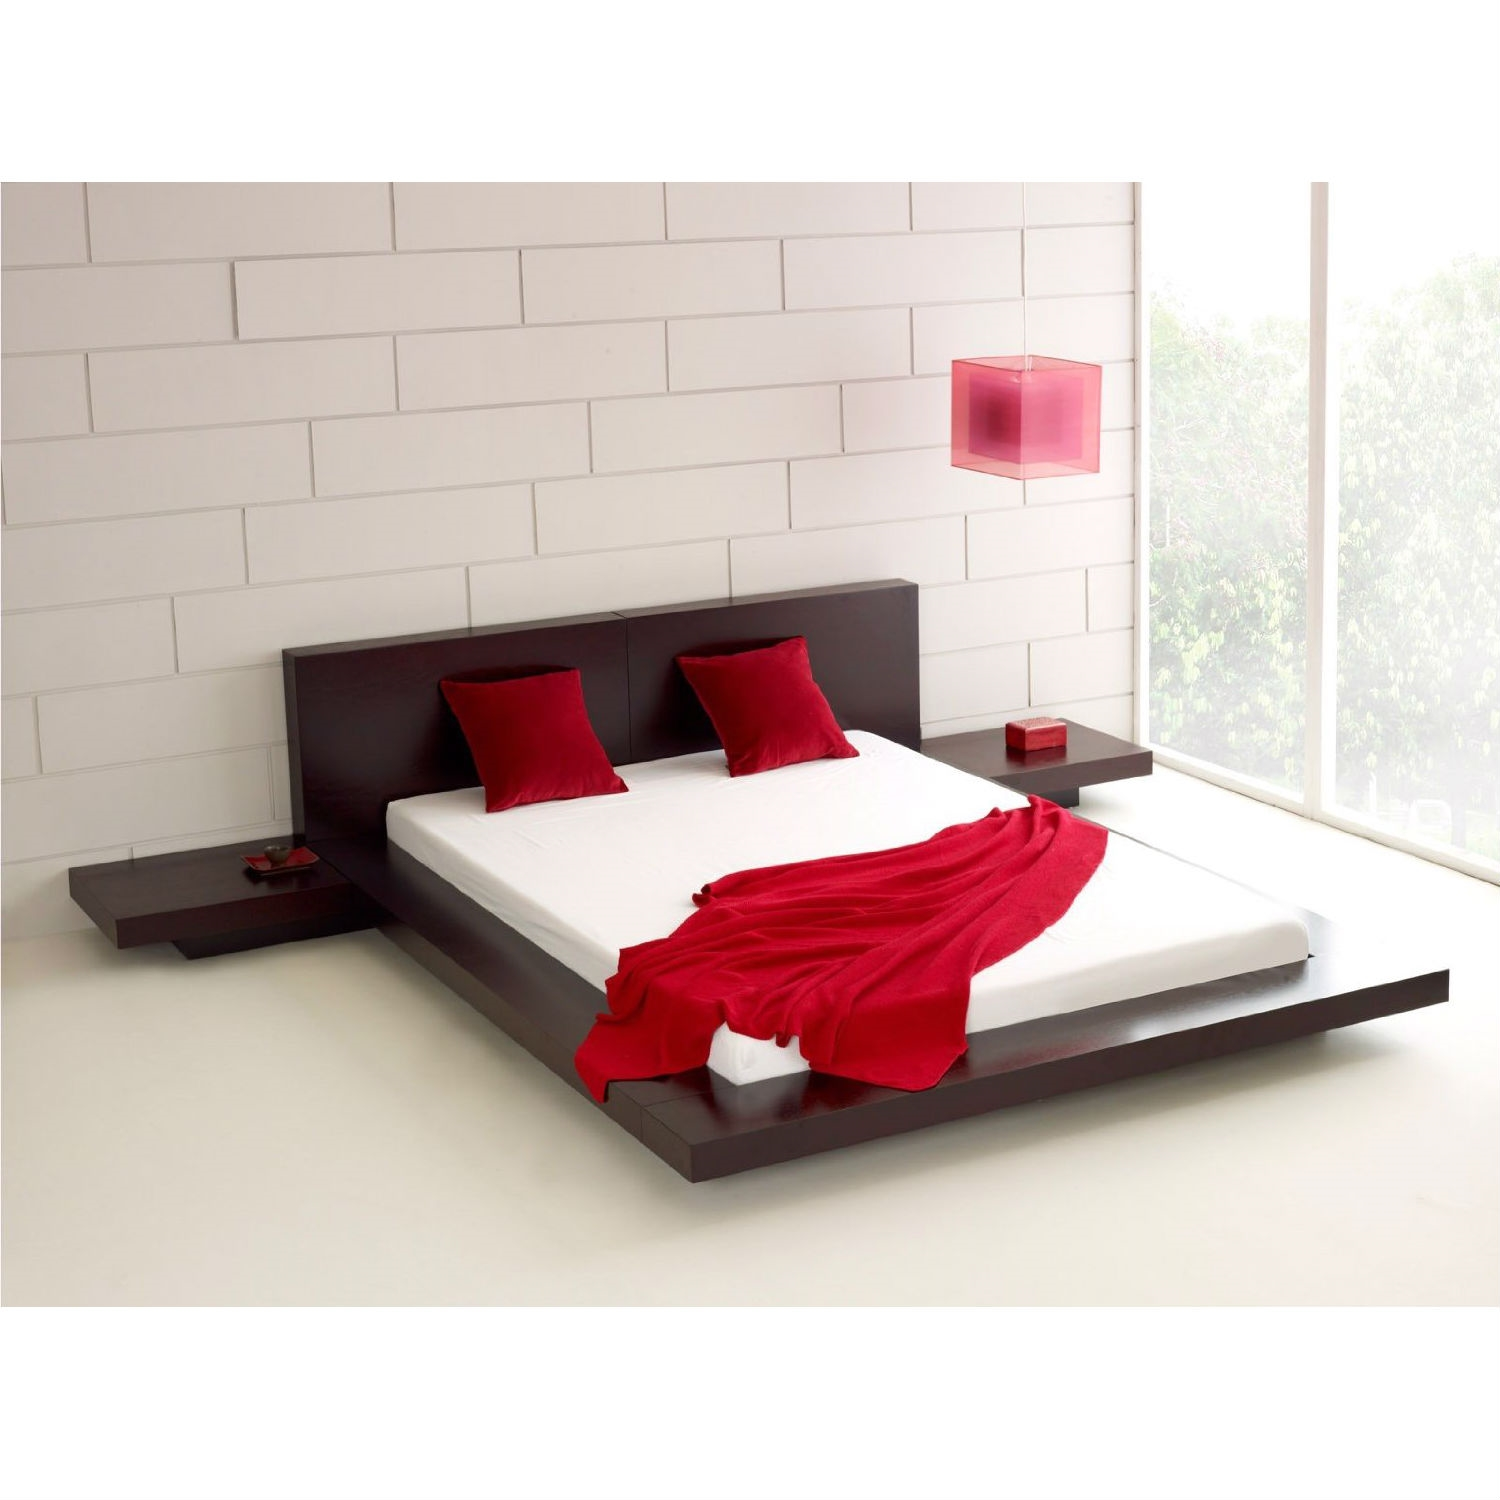 Picture of: Queen Modern Platform Bed W Headboard And 2 Nightstands In Espresso Fastfurnishings Com